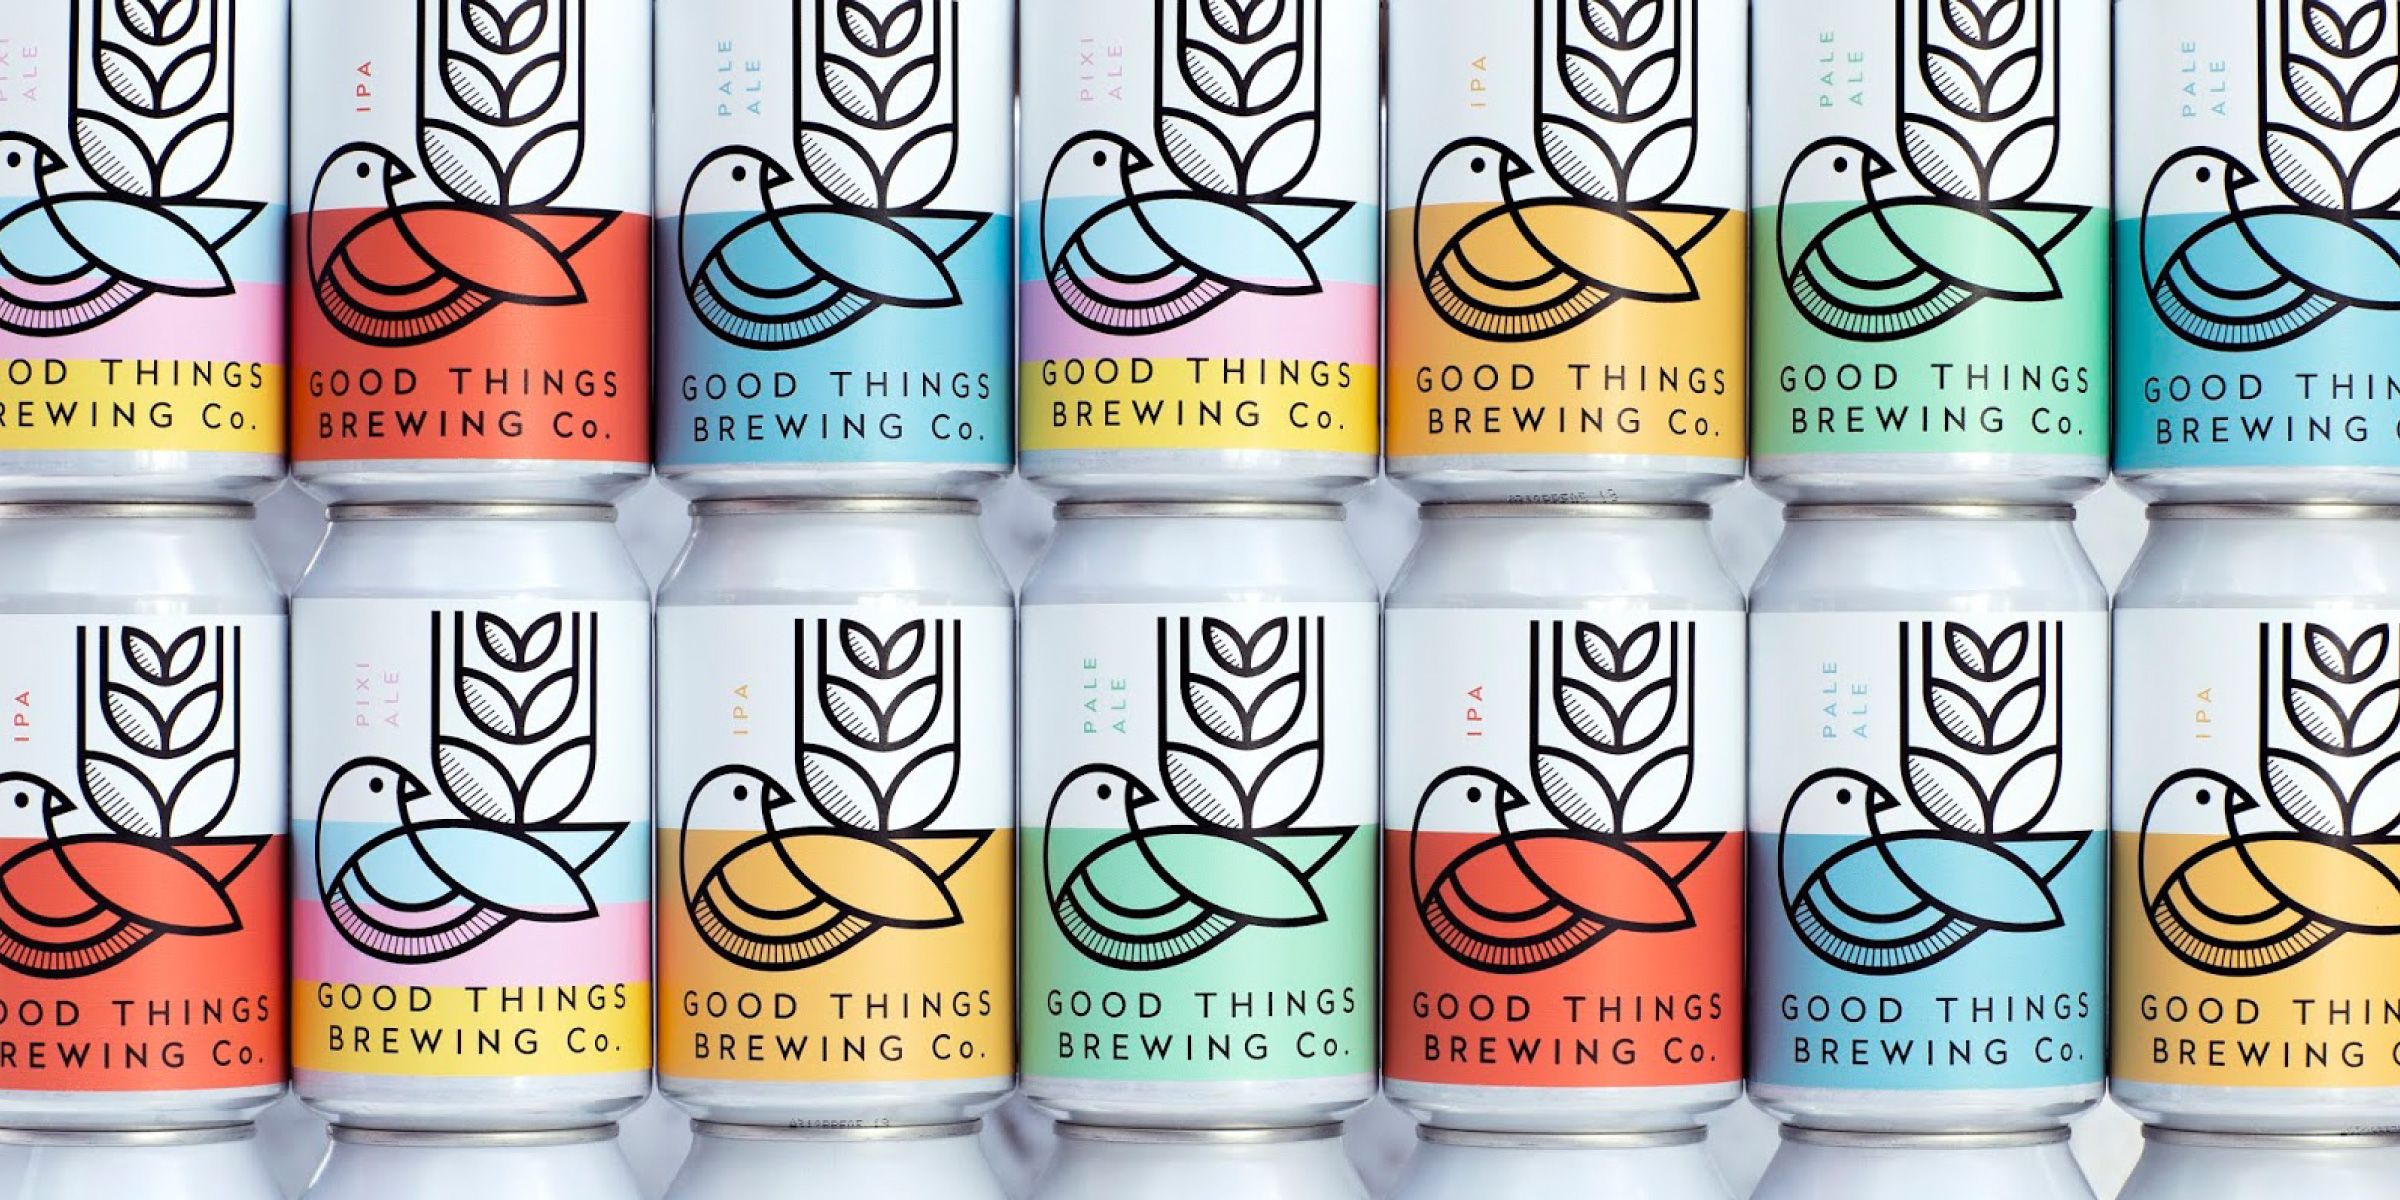 Good Things Brewing Co. Brand Inspiration